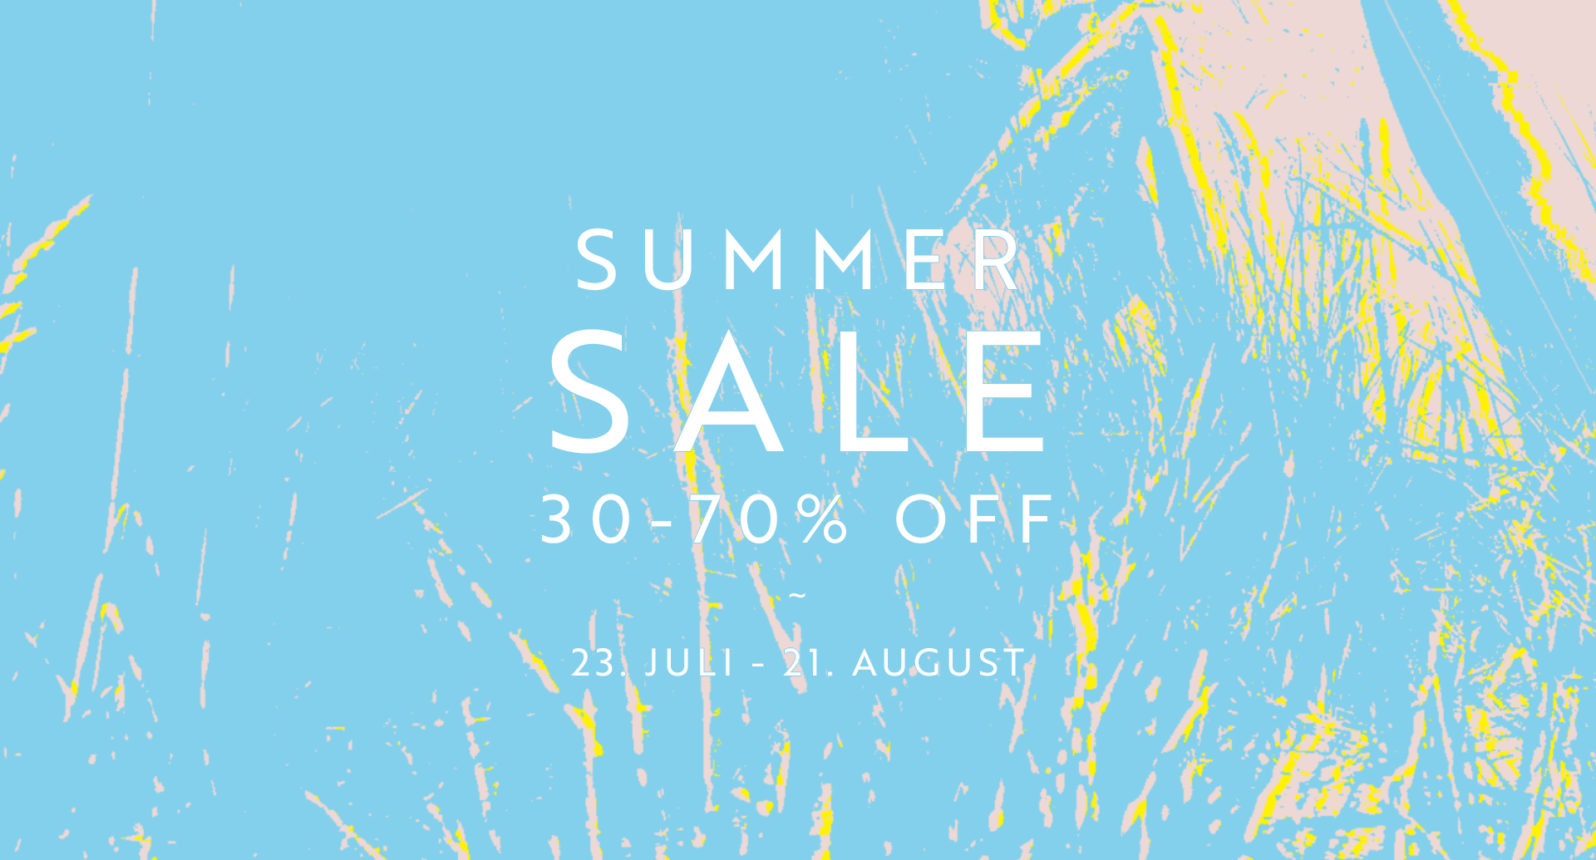 ABOUT GIVEN SUMMERSALE